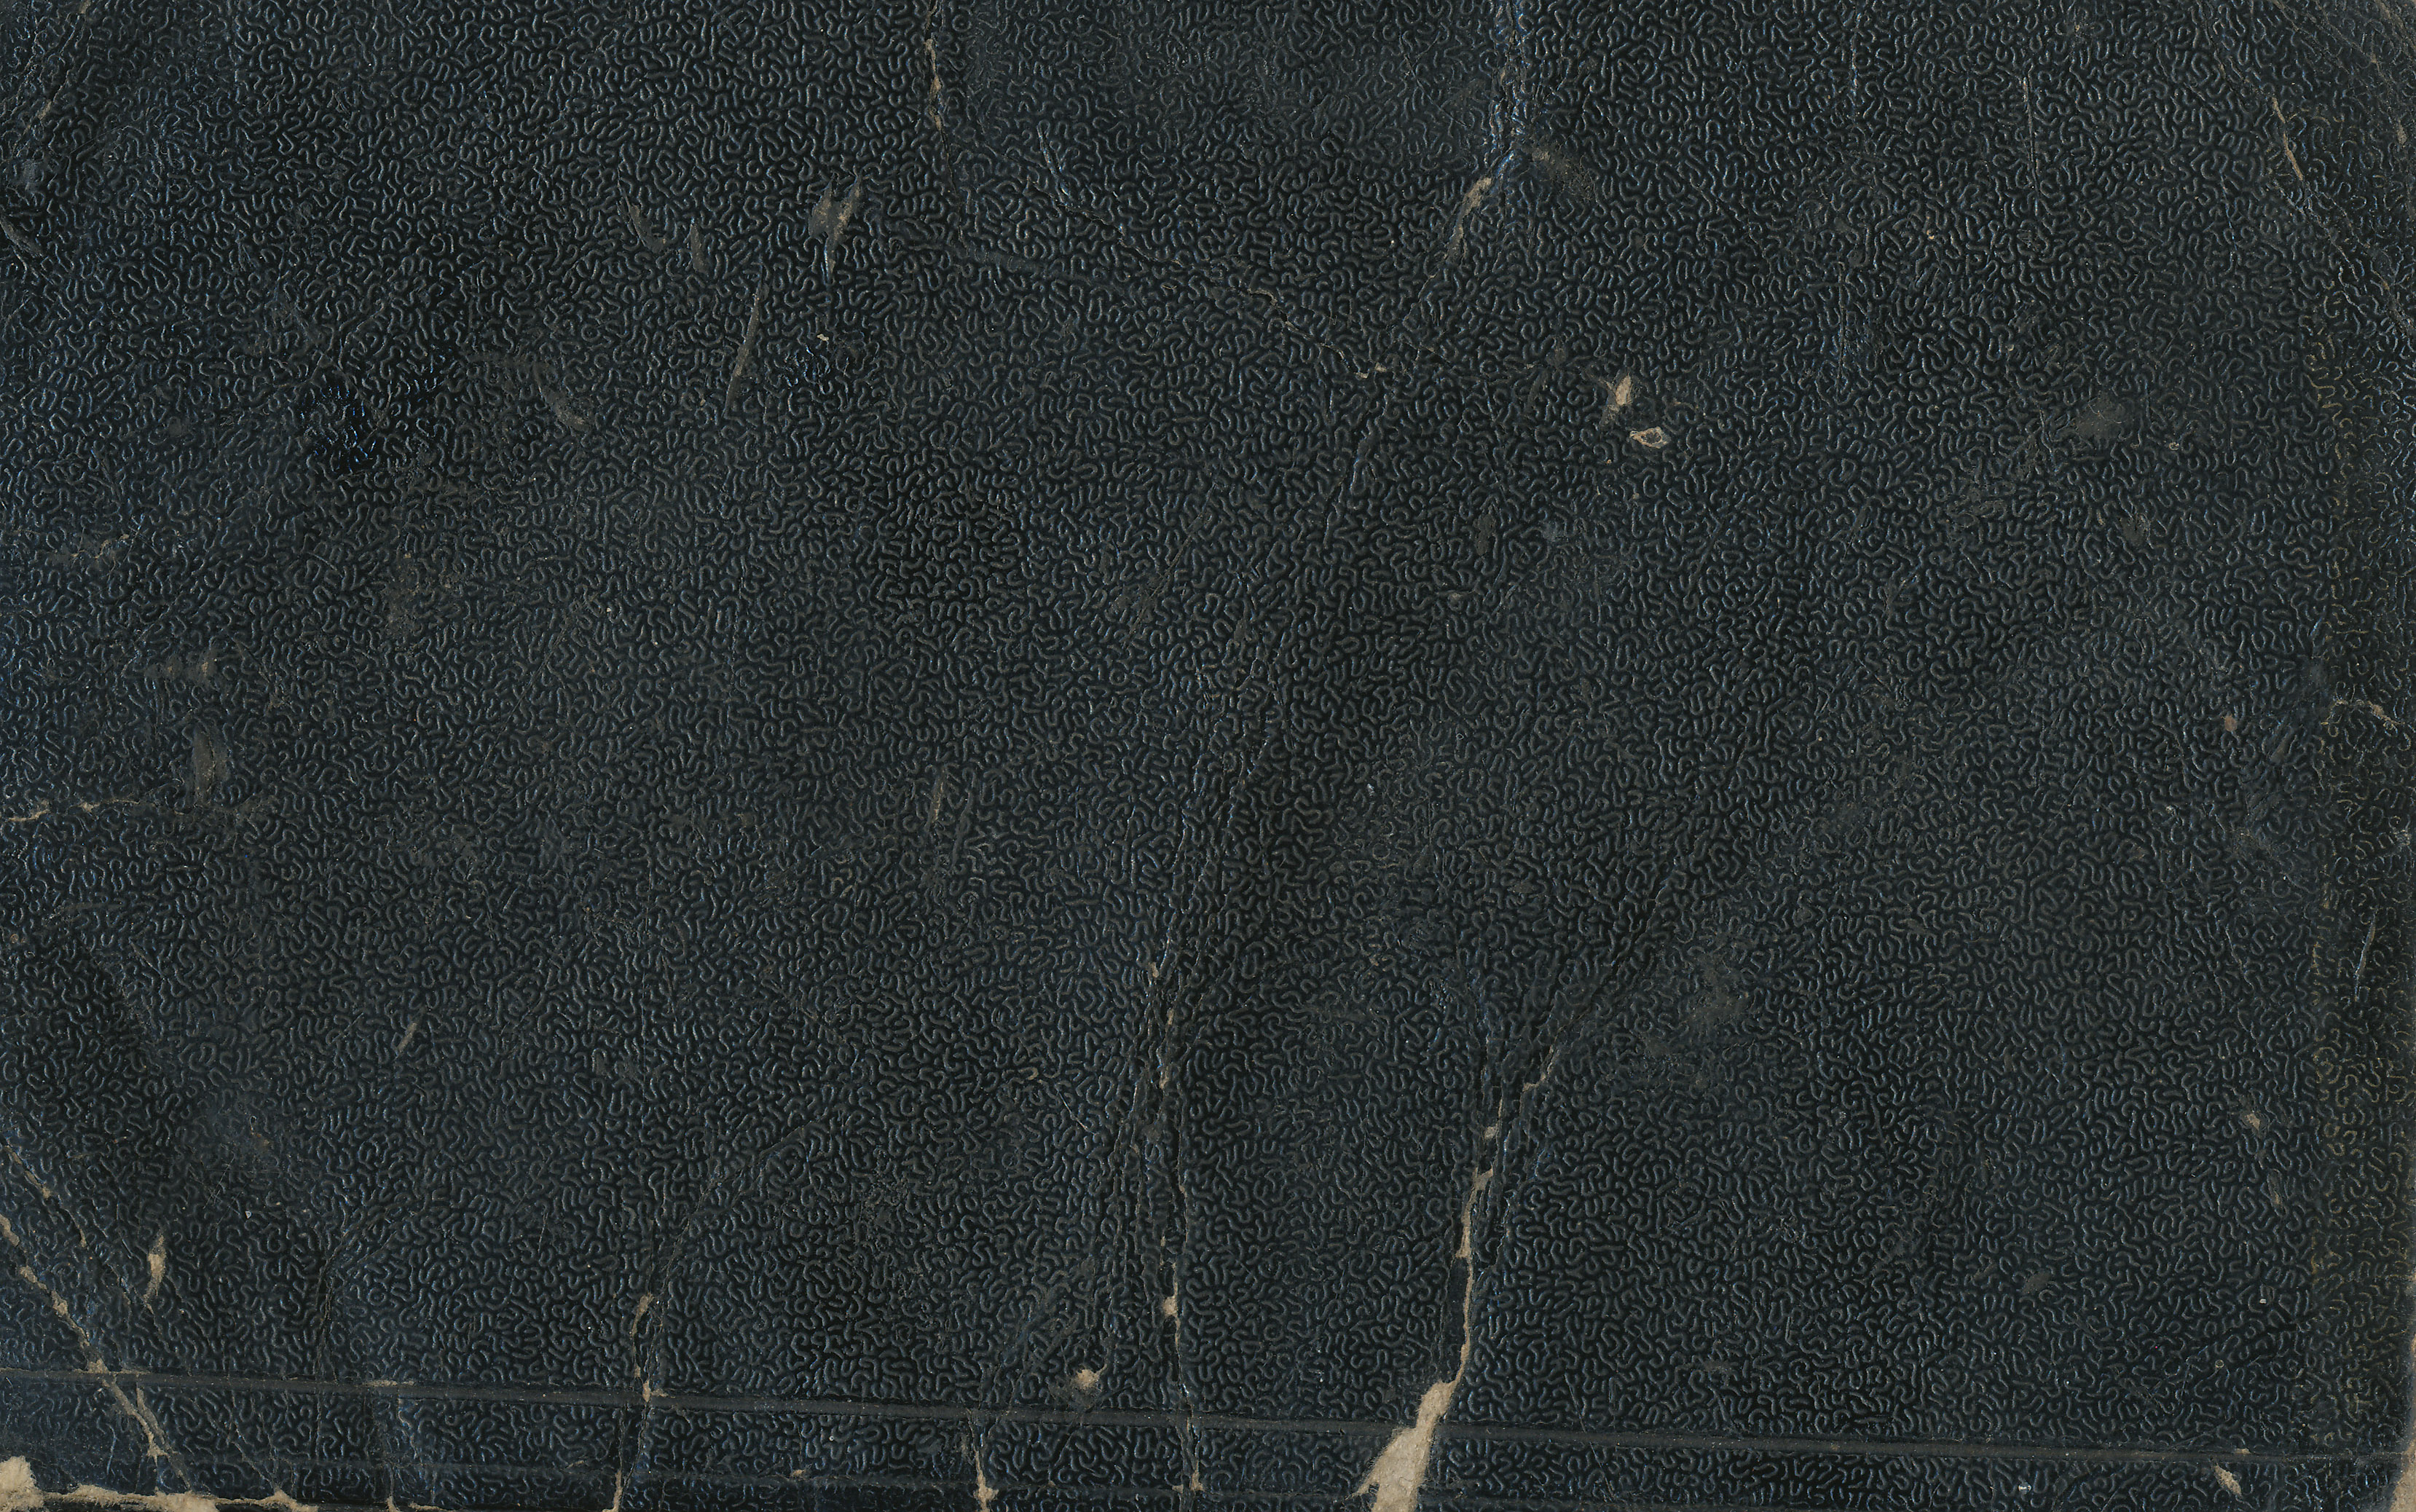 Black Book Cover Texture : Book cover paper texture black textures for photoshop free